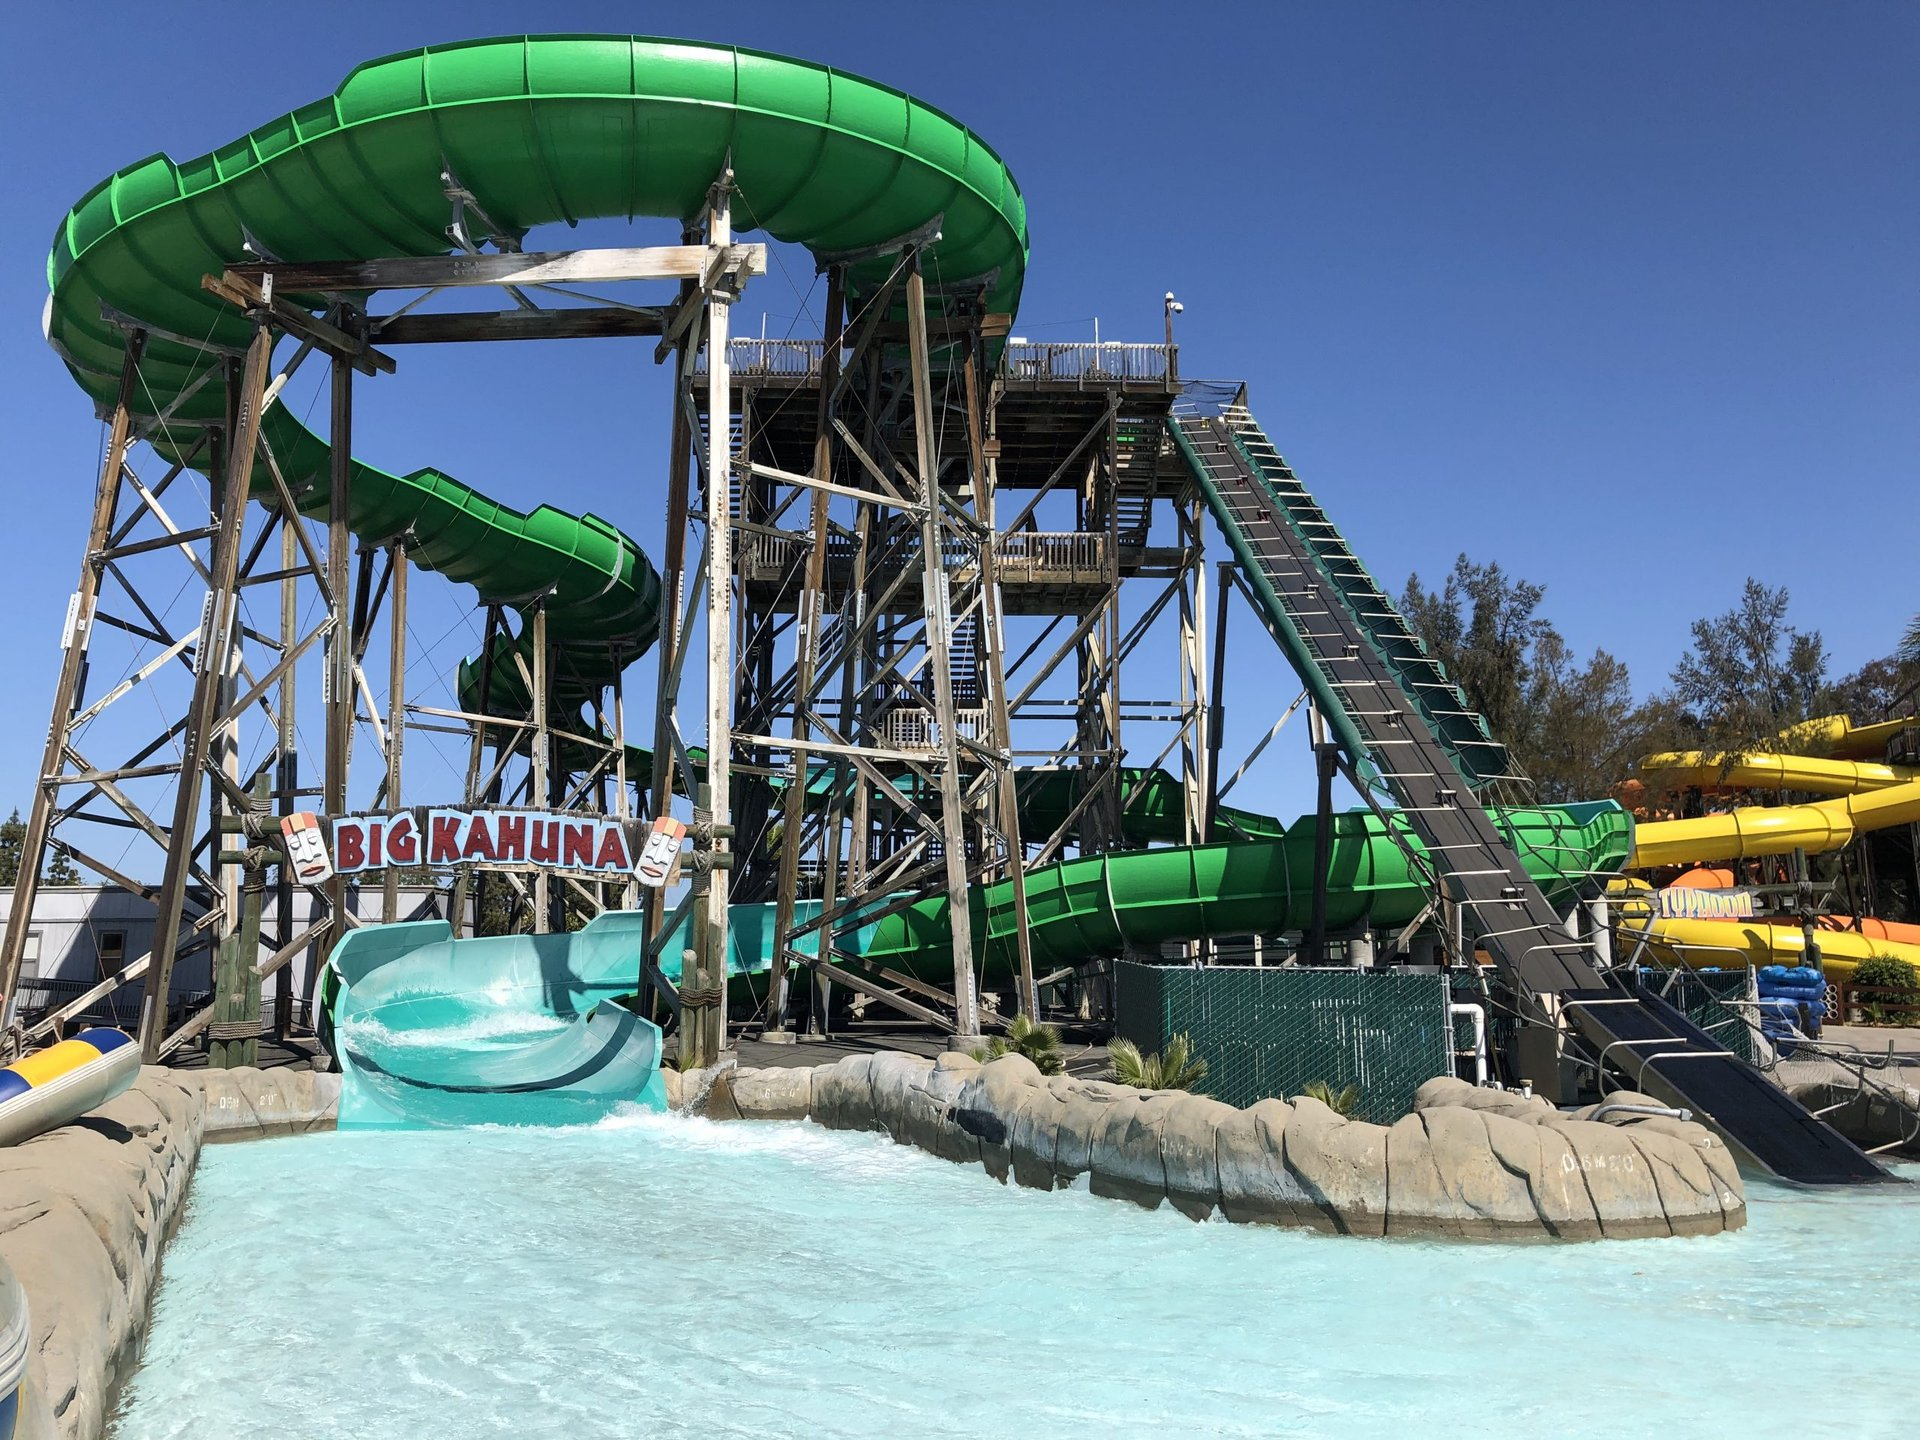 View of the splash down pool and sign for The Big Kahuna at Hurricane Harbor